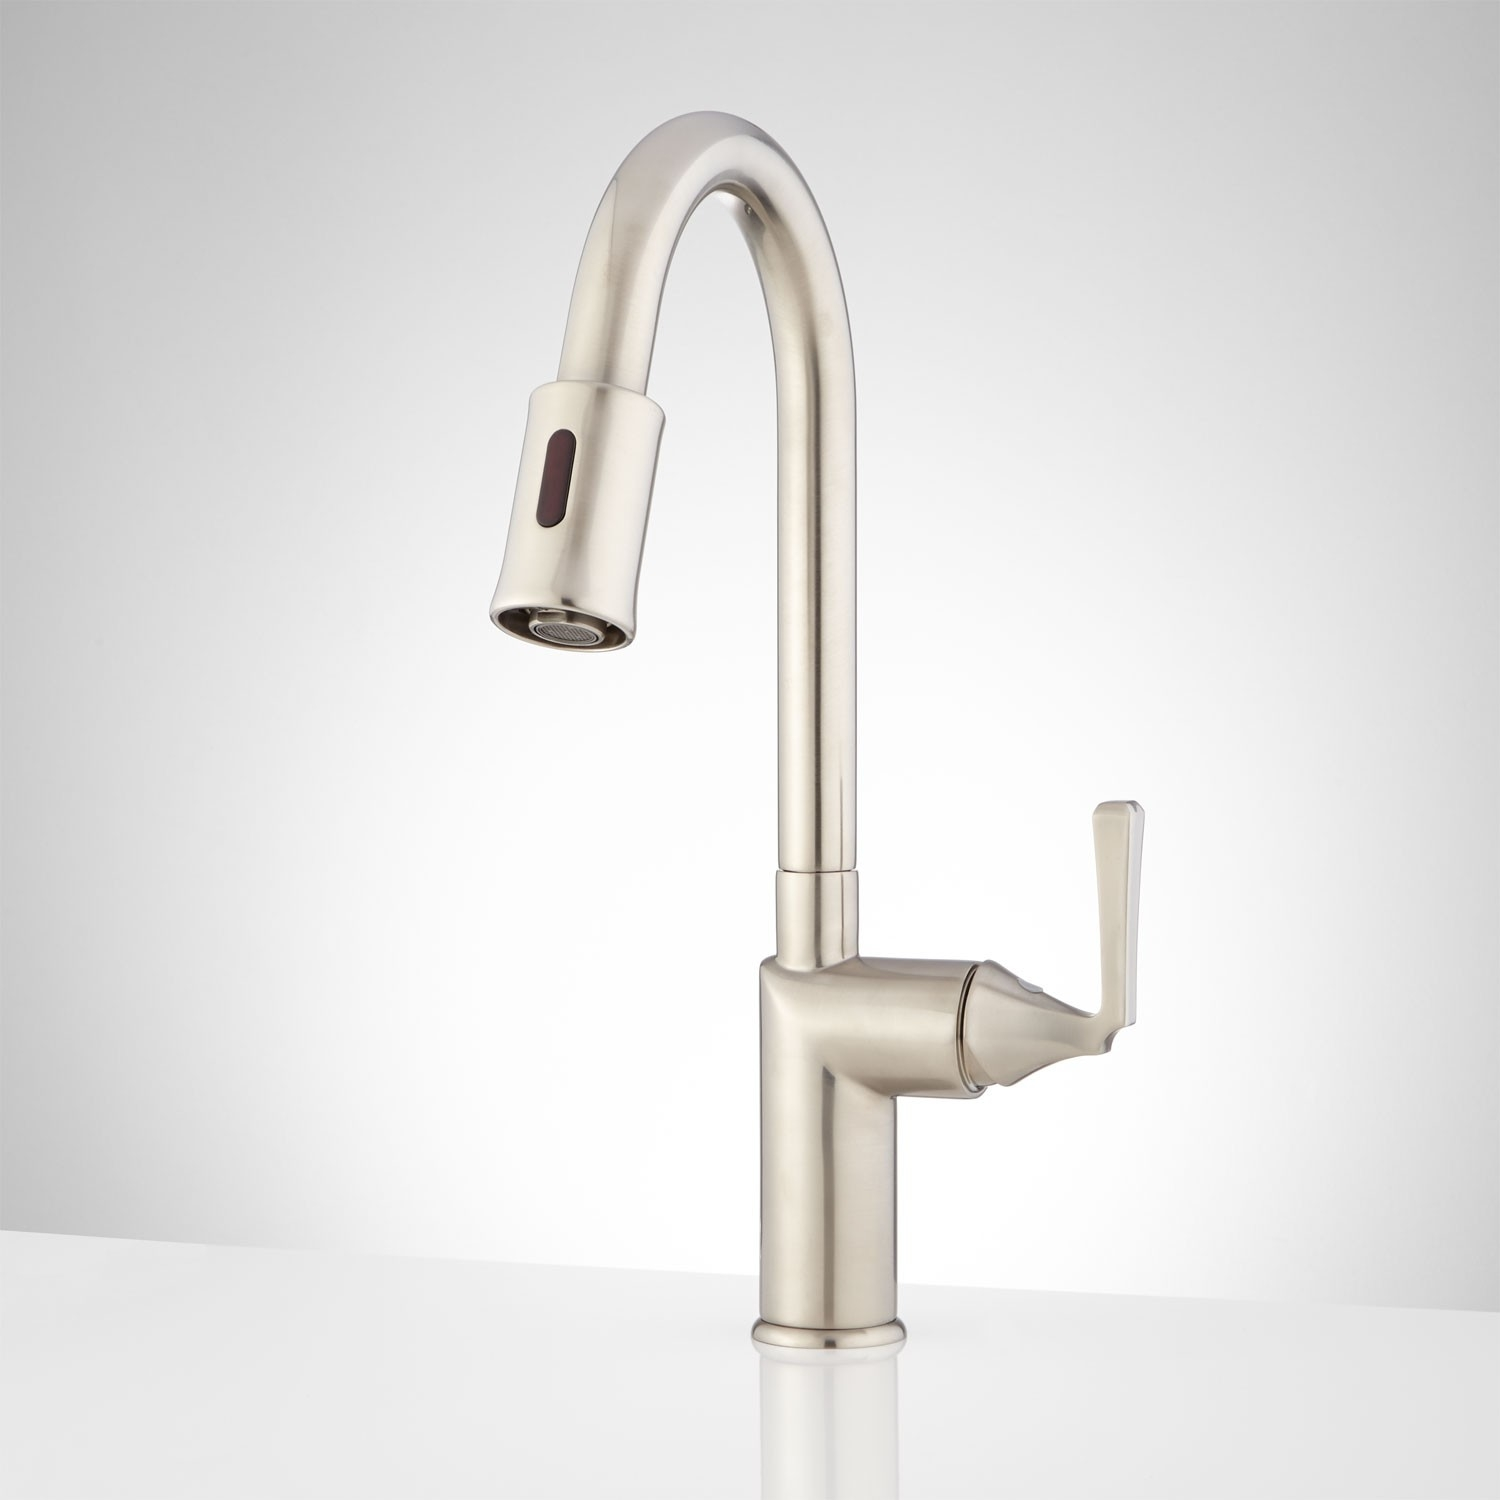 Ideas, delta touchless faucet troubleshooting delta touchless faucet troubleshooting delta touch faucet problems inspirations also touchless kitchen 1500 x 1500  .